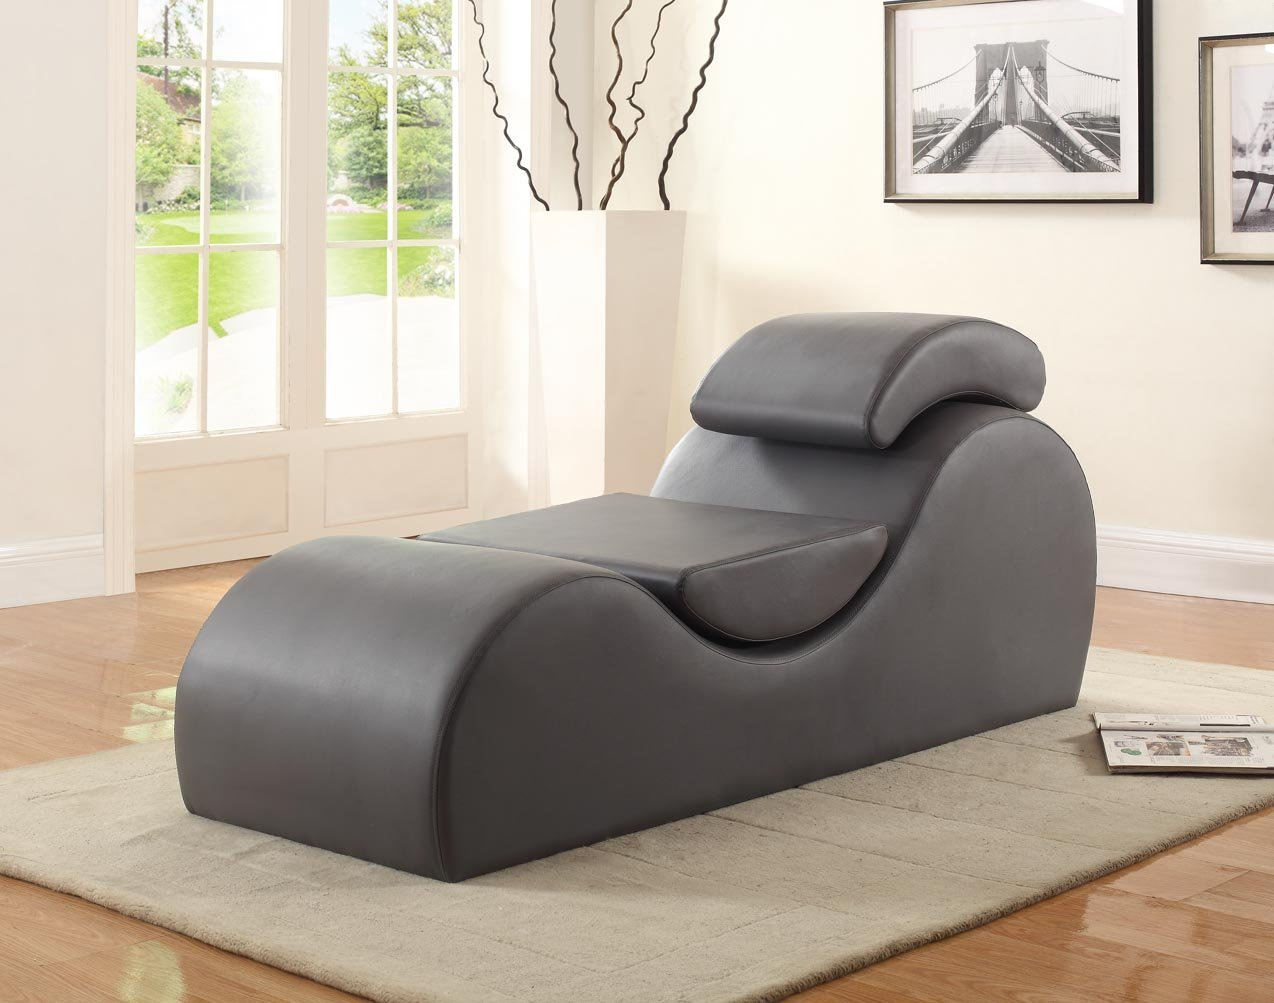 Container Furniture Direct Yoga Collection Modern Upholstered Faux Leather Stretch Relaxation Living Room Chaise, Grey